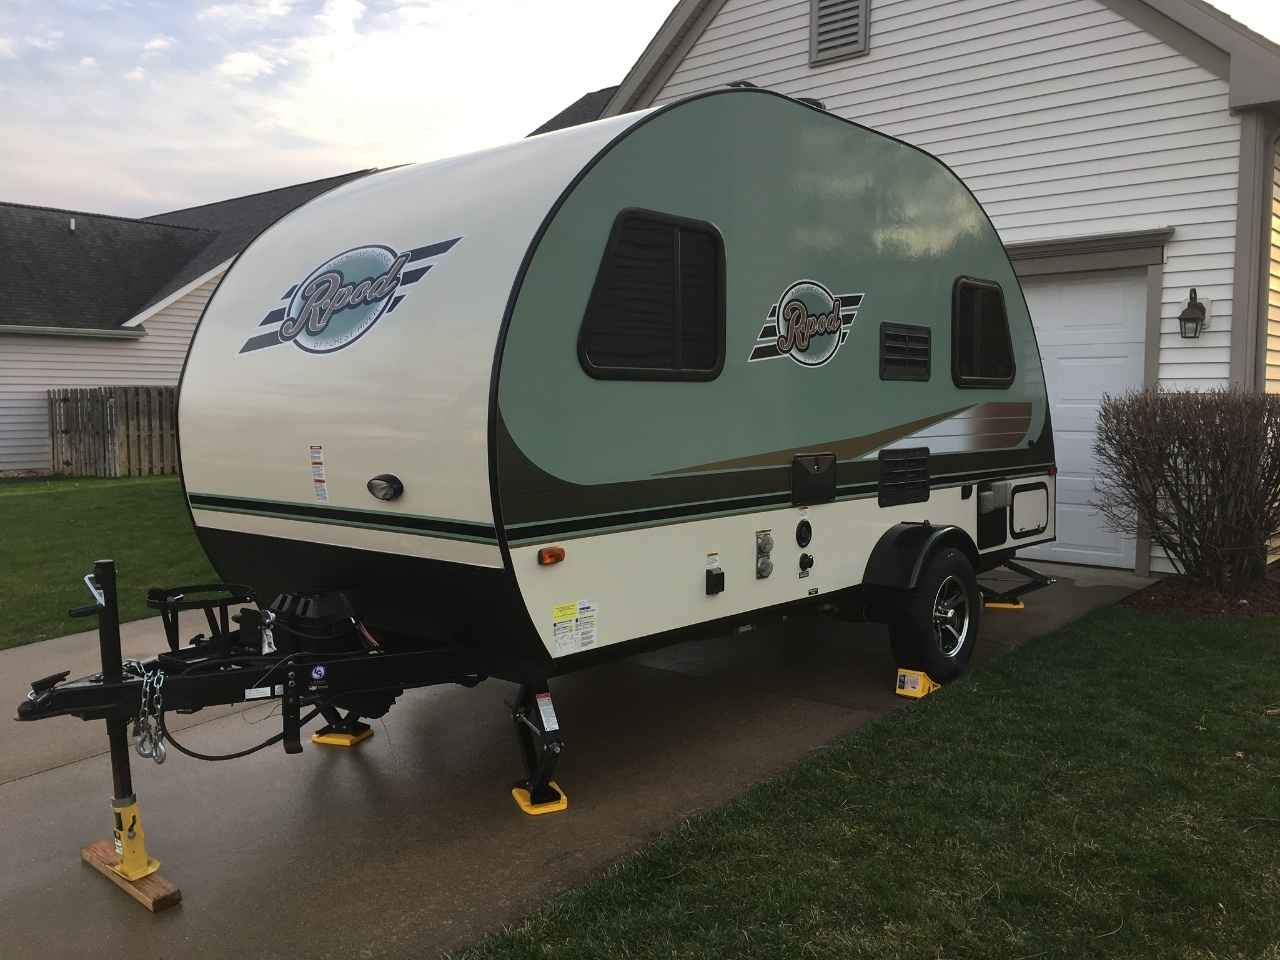 R Pod Weight >> 2016 Used Forest River R-POD 171 Travel Trailer in Michigan MI